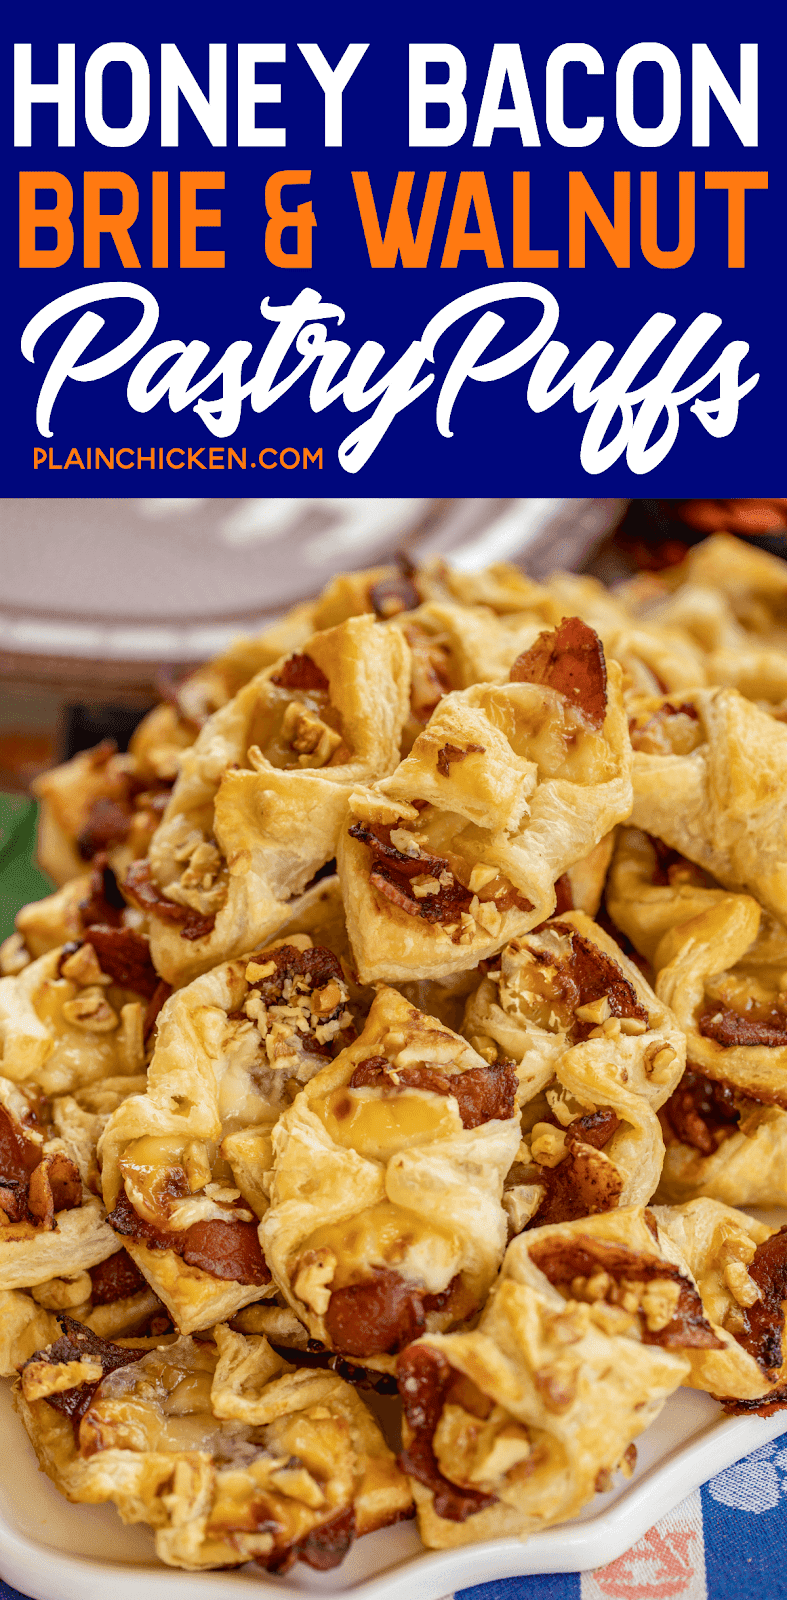 Honey Bacon Brie and Walnut Pastry Puffs recipe - sweet and salty goodness!!! The flavor combination is totally addicting. Can make the bites ahead of time and refrigerate or freeze until ready to bake. Great for all your holiday parties and tailgating!! You might want to double the recipe - these pastry puffs don't last long!! #appetizer #tailgating #brie #bacon